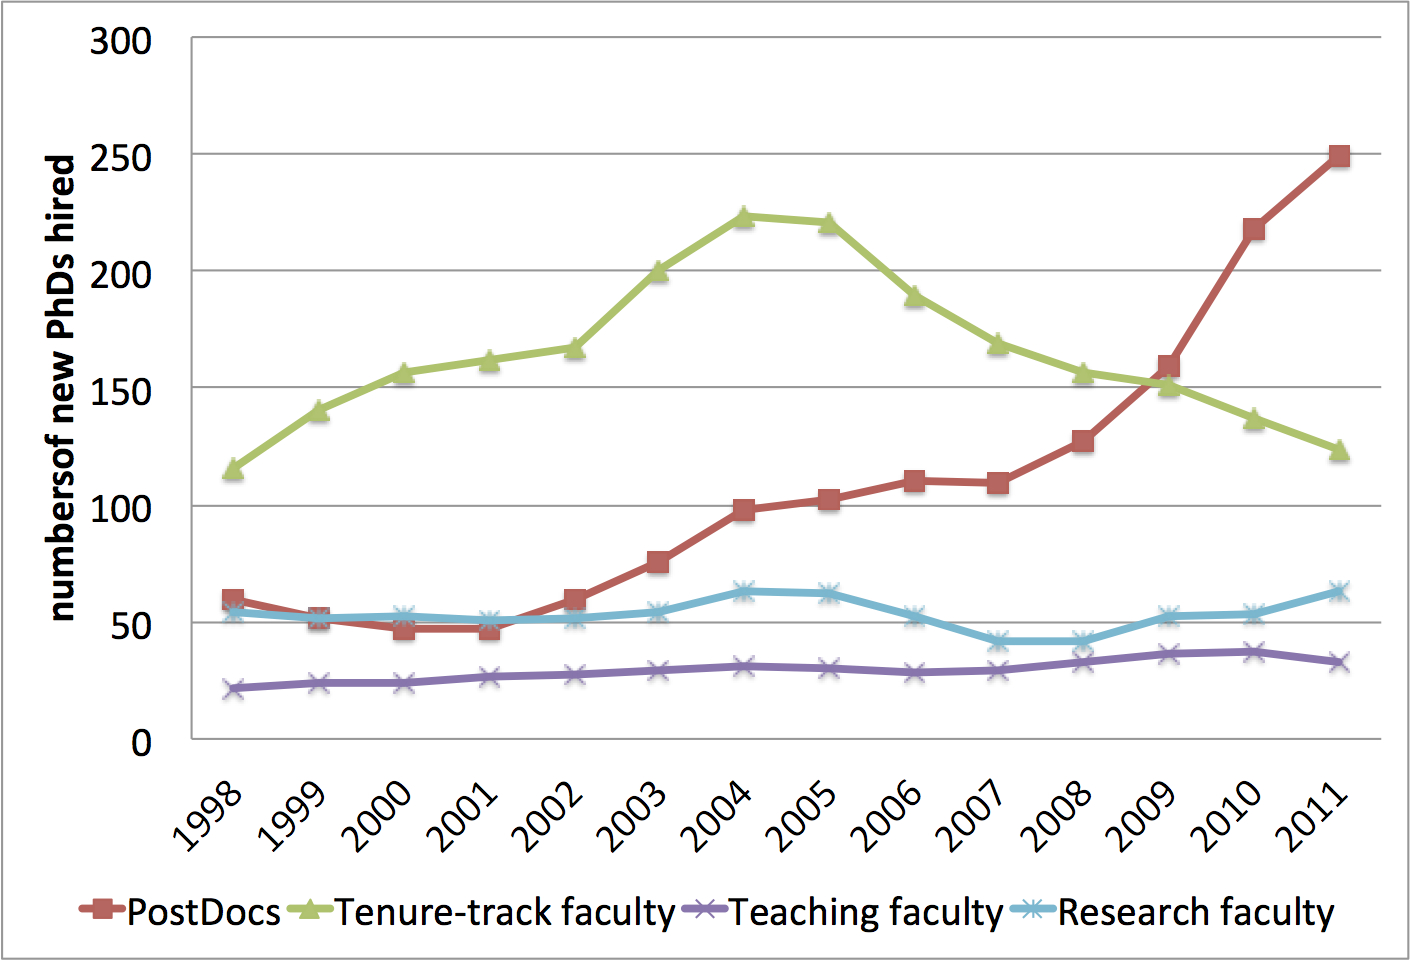 cademic hiring of new computer science Ph.D.s from U.S. and Canadian universities, as a three-year rolling average, 1998-2011.